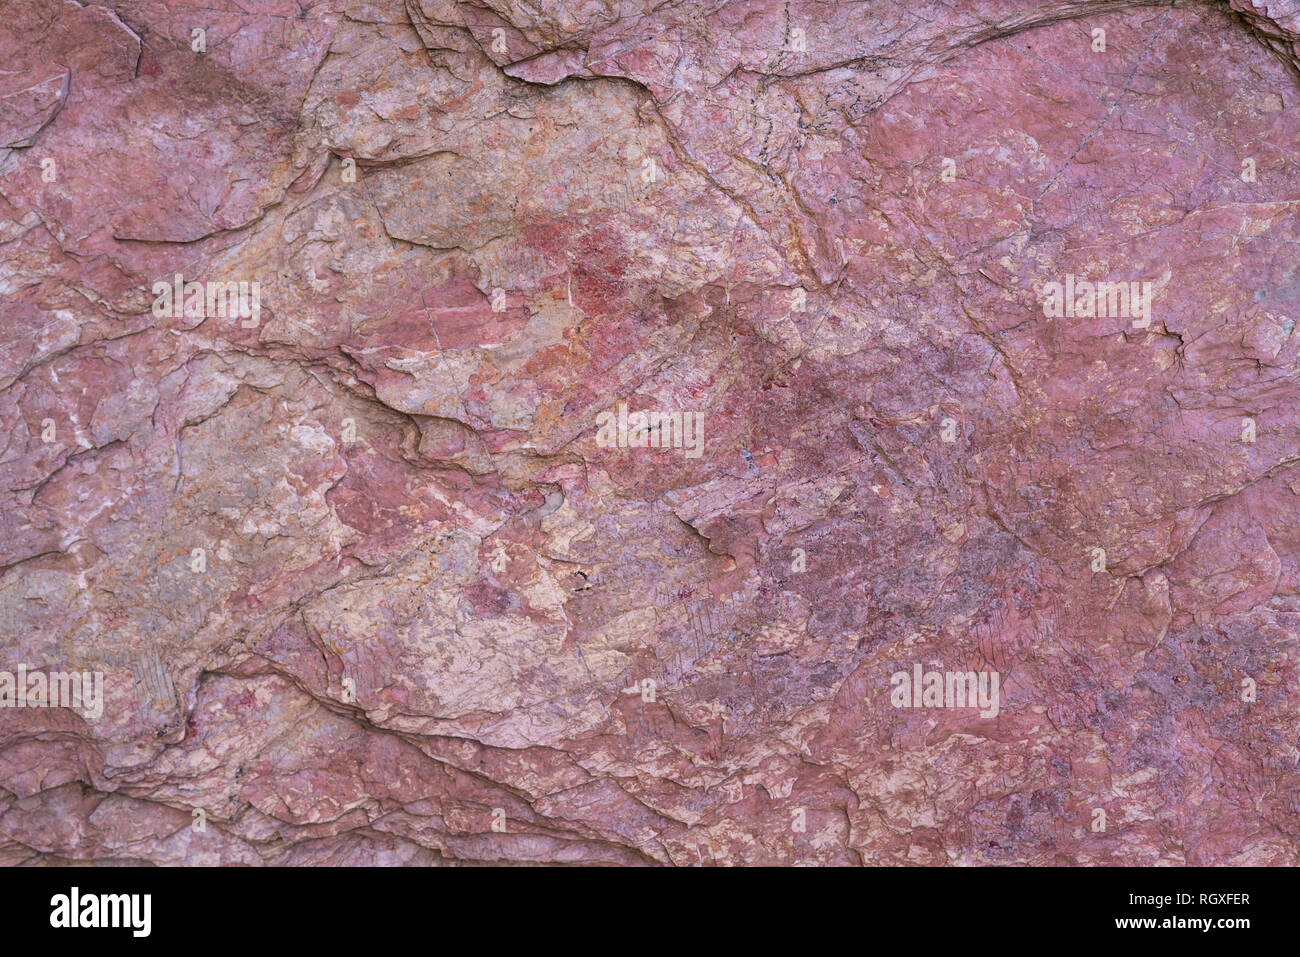 Natural stone floor texture Inspirational Stone Texture Background With Unique Pattern Pink Rock Texture Rock Surface Abstract Background Natural Stone Background Purple Rough Stone Floor Alamy Stone Texture Background With Unique Pattern Pink Rock Texture